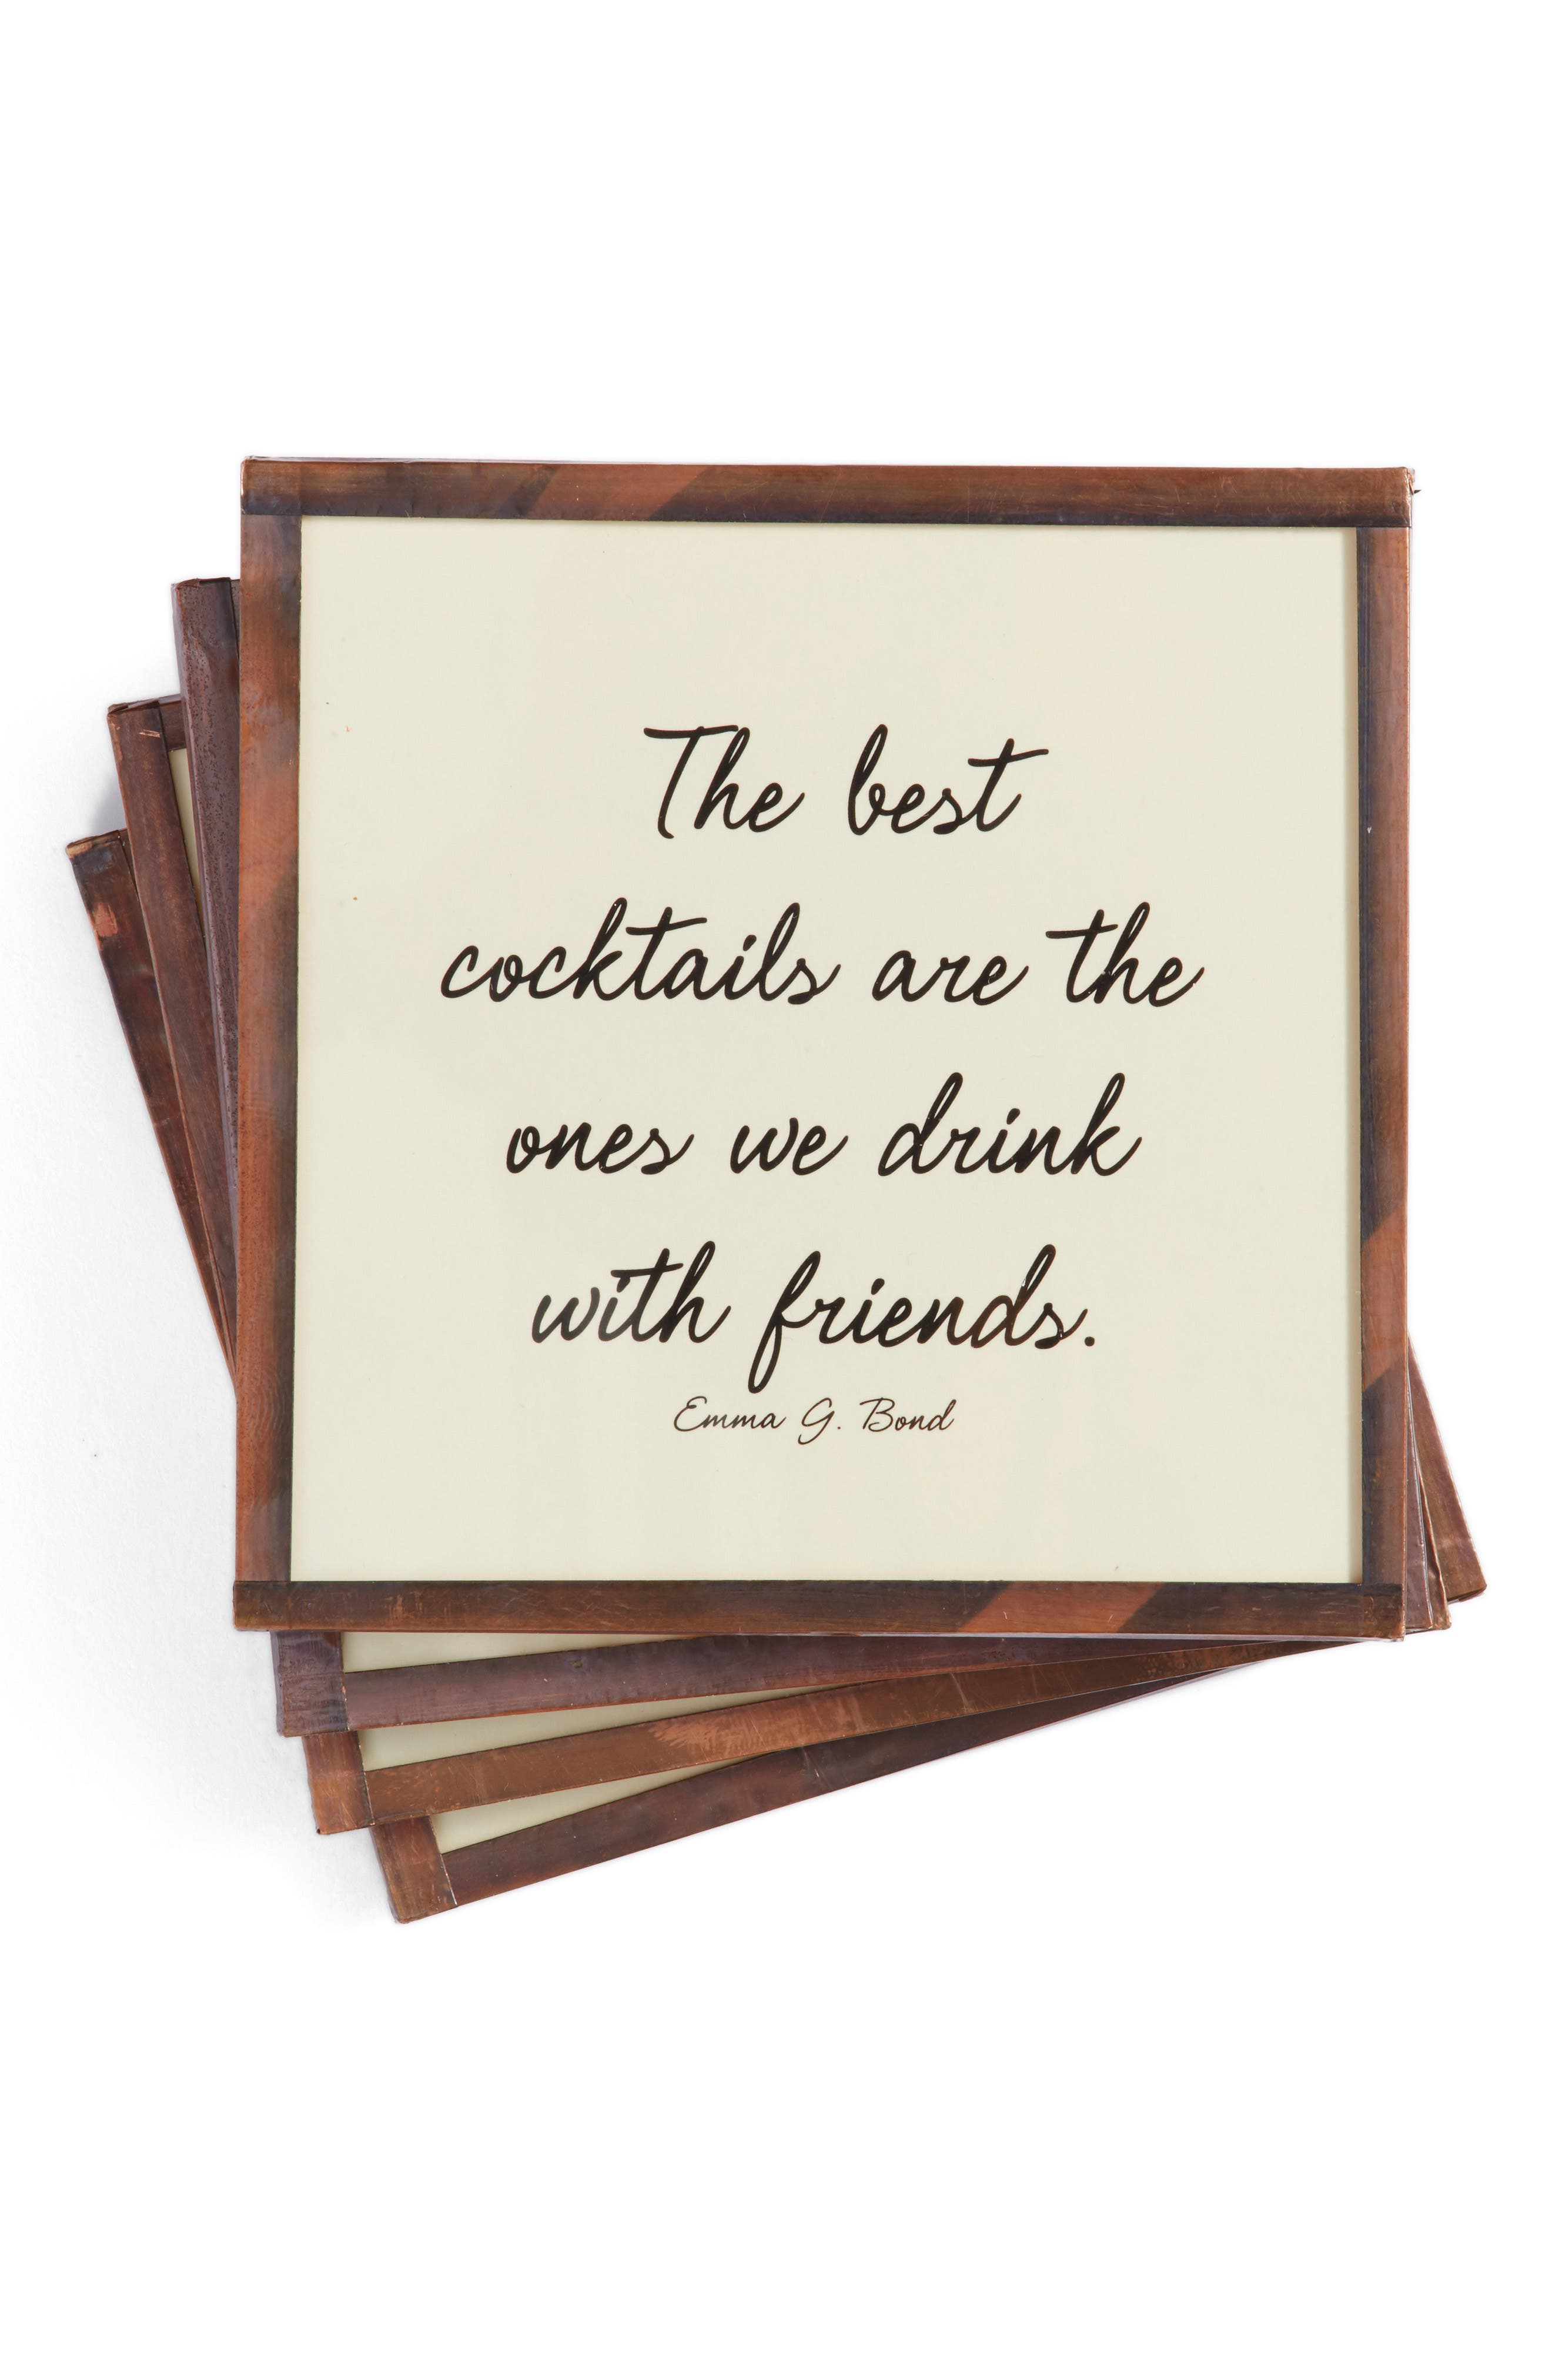 The Best Cocktails Set of 4 Coasters,                             Main thumbnail 1, color,                             900